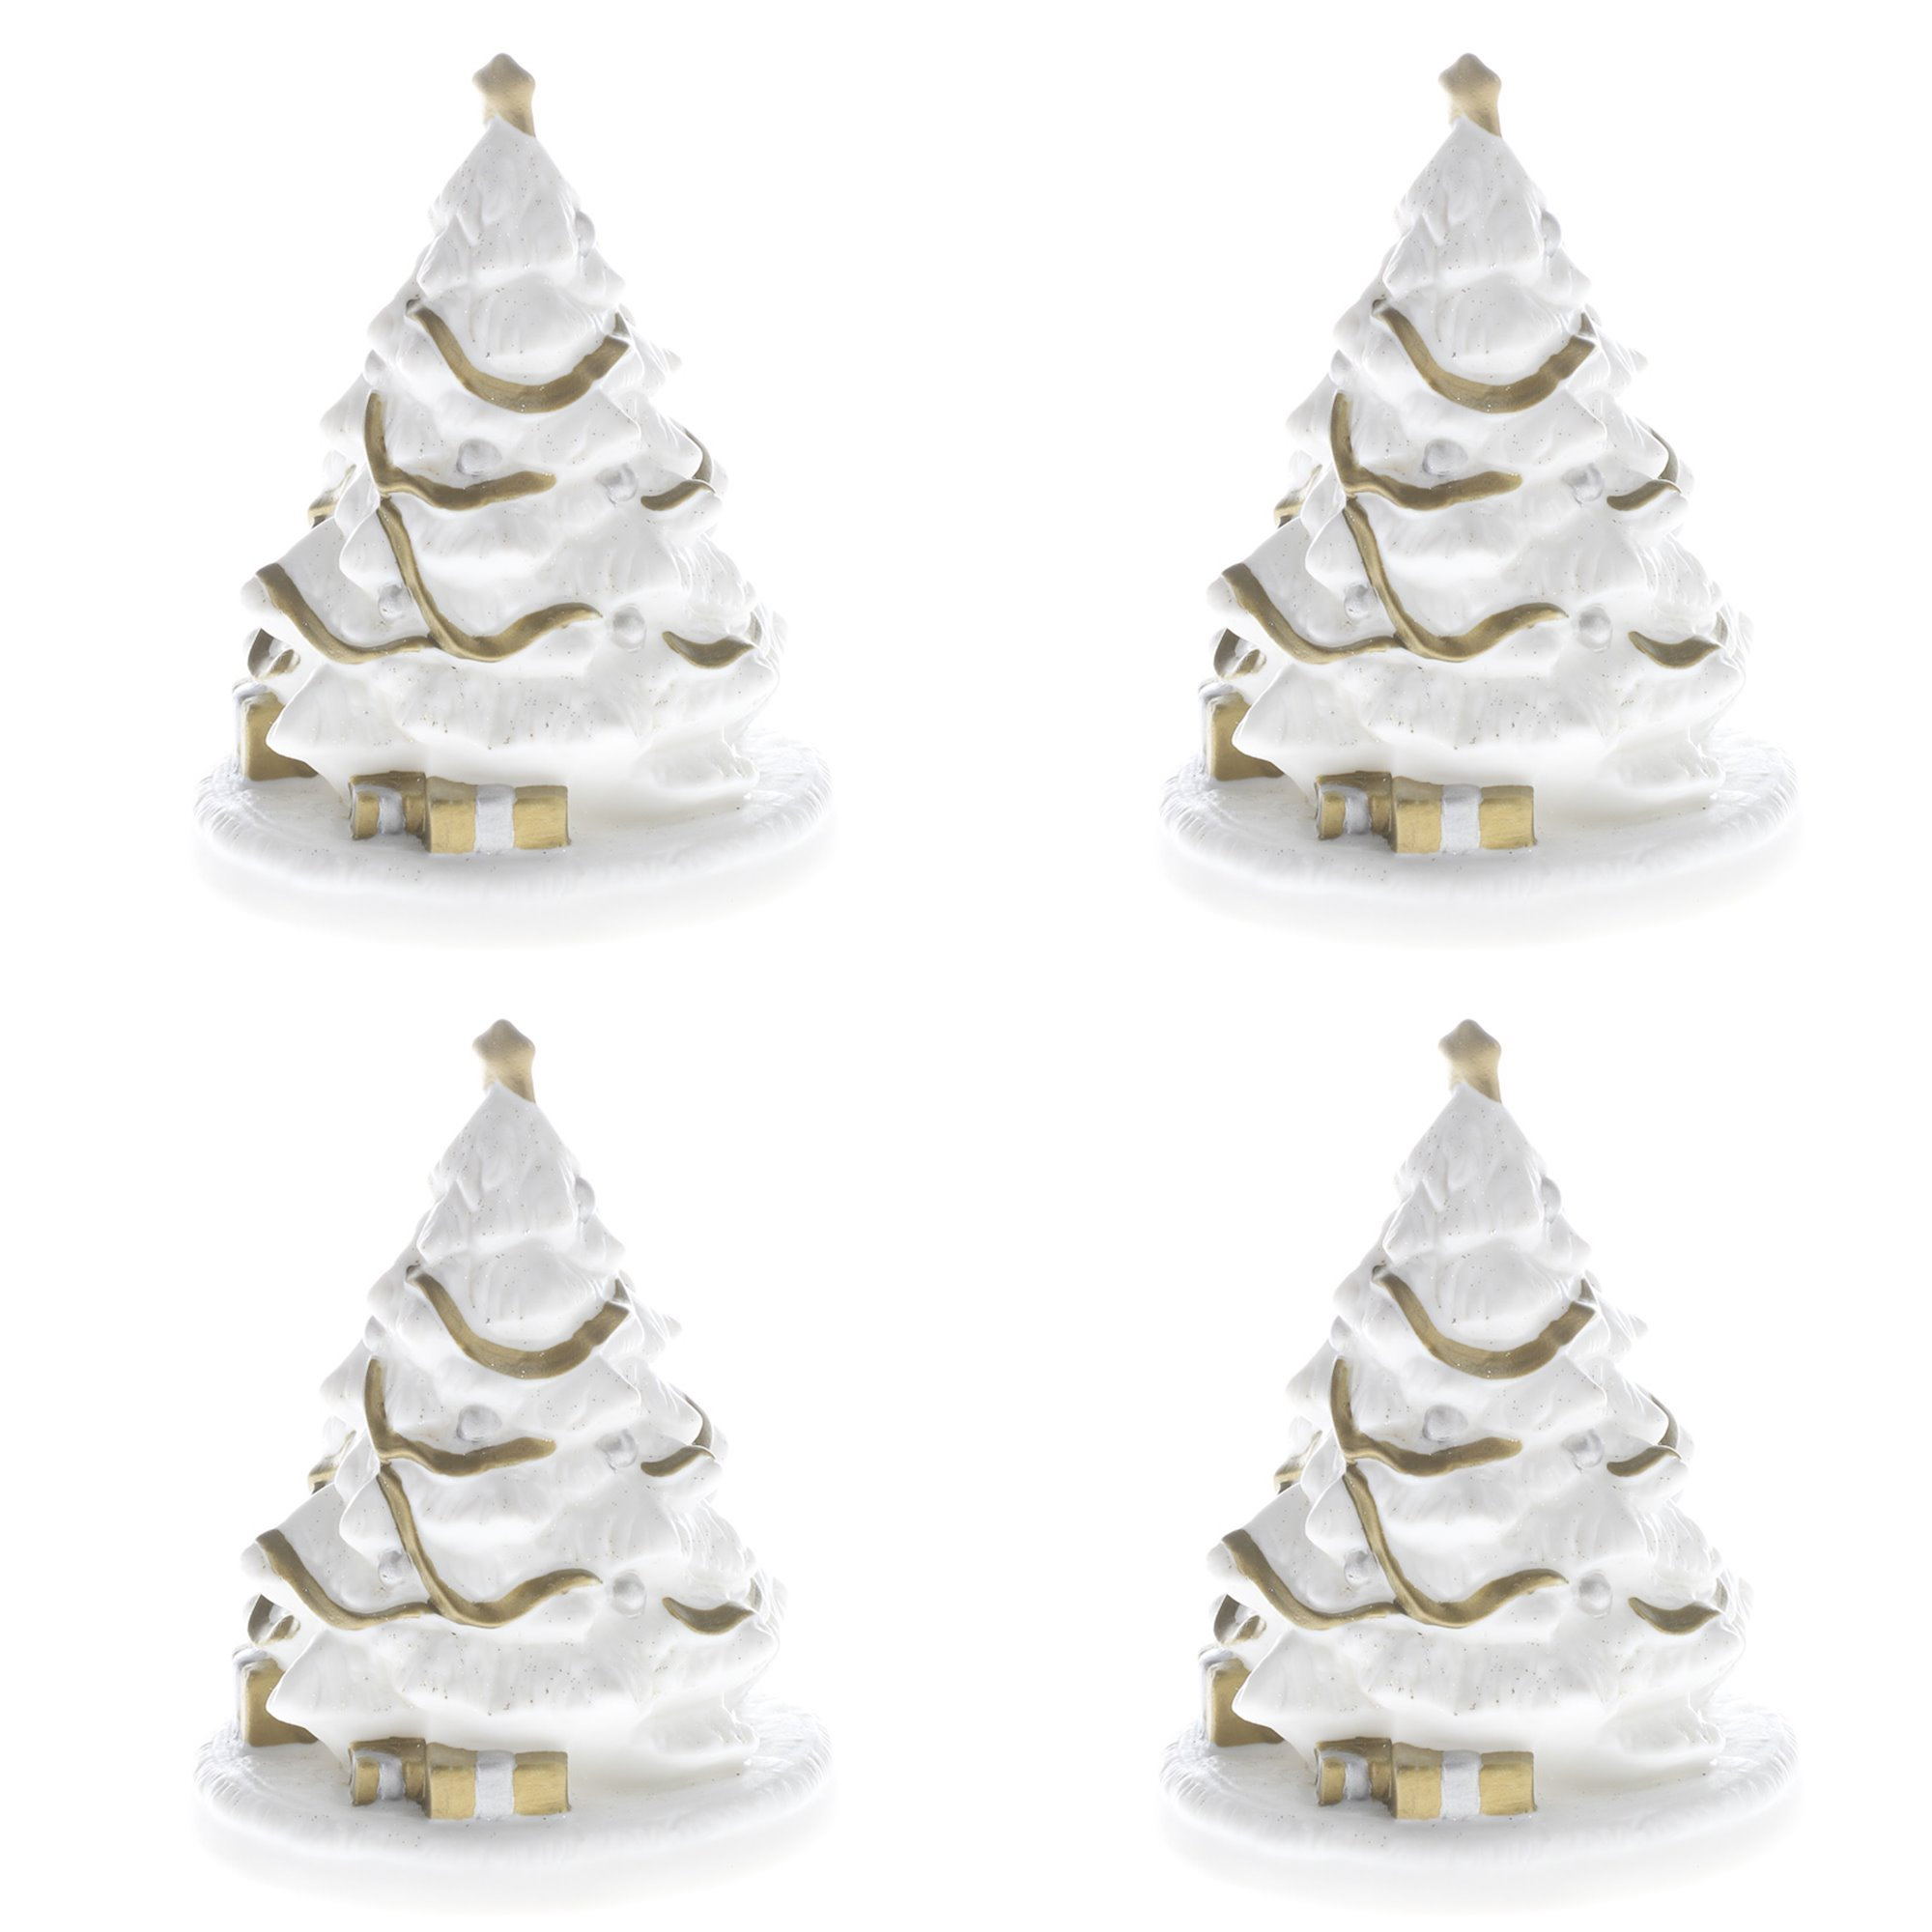 Group of 4 Vintage Inspired White Ceramic Christmas Trees Trimmed in Gold Painted Trimmings